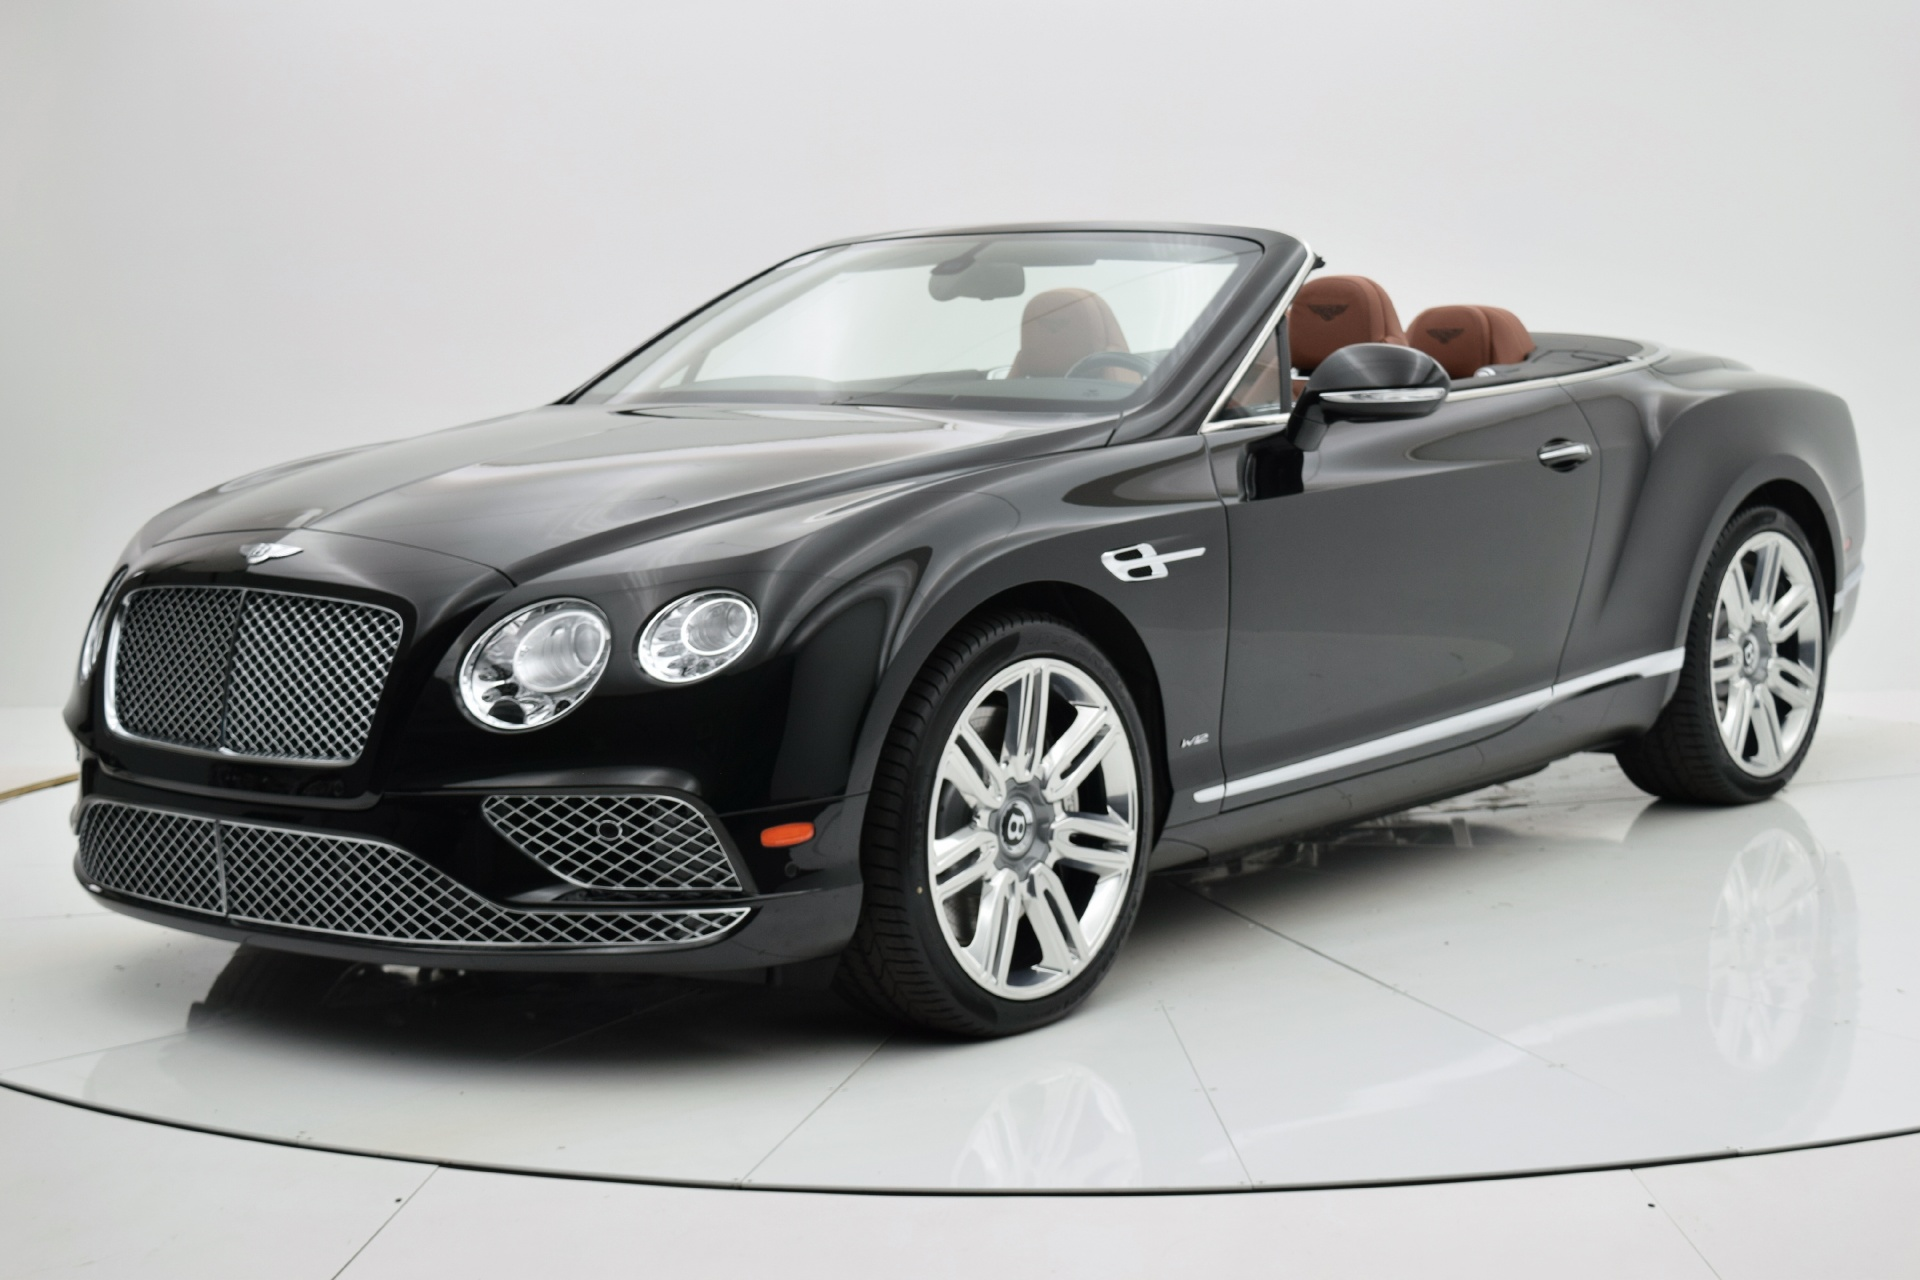 Used 2016 Bentley Continental GT W12 for sale $145,880 at F.C. Kerbeck Aston Martin in Palmyra NJ 08065 2